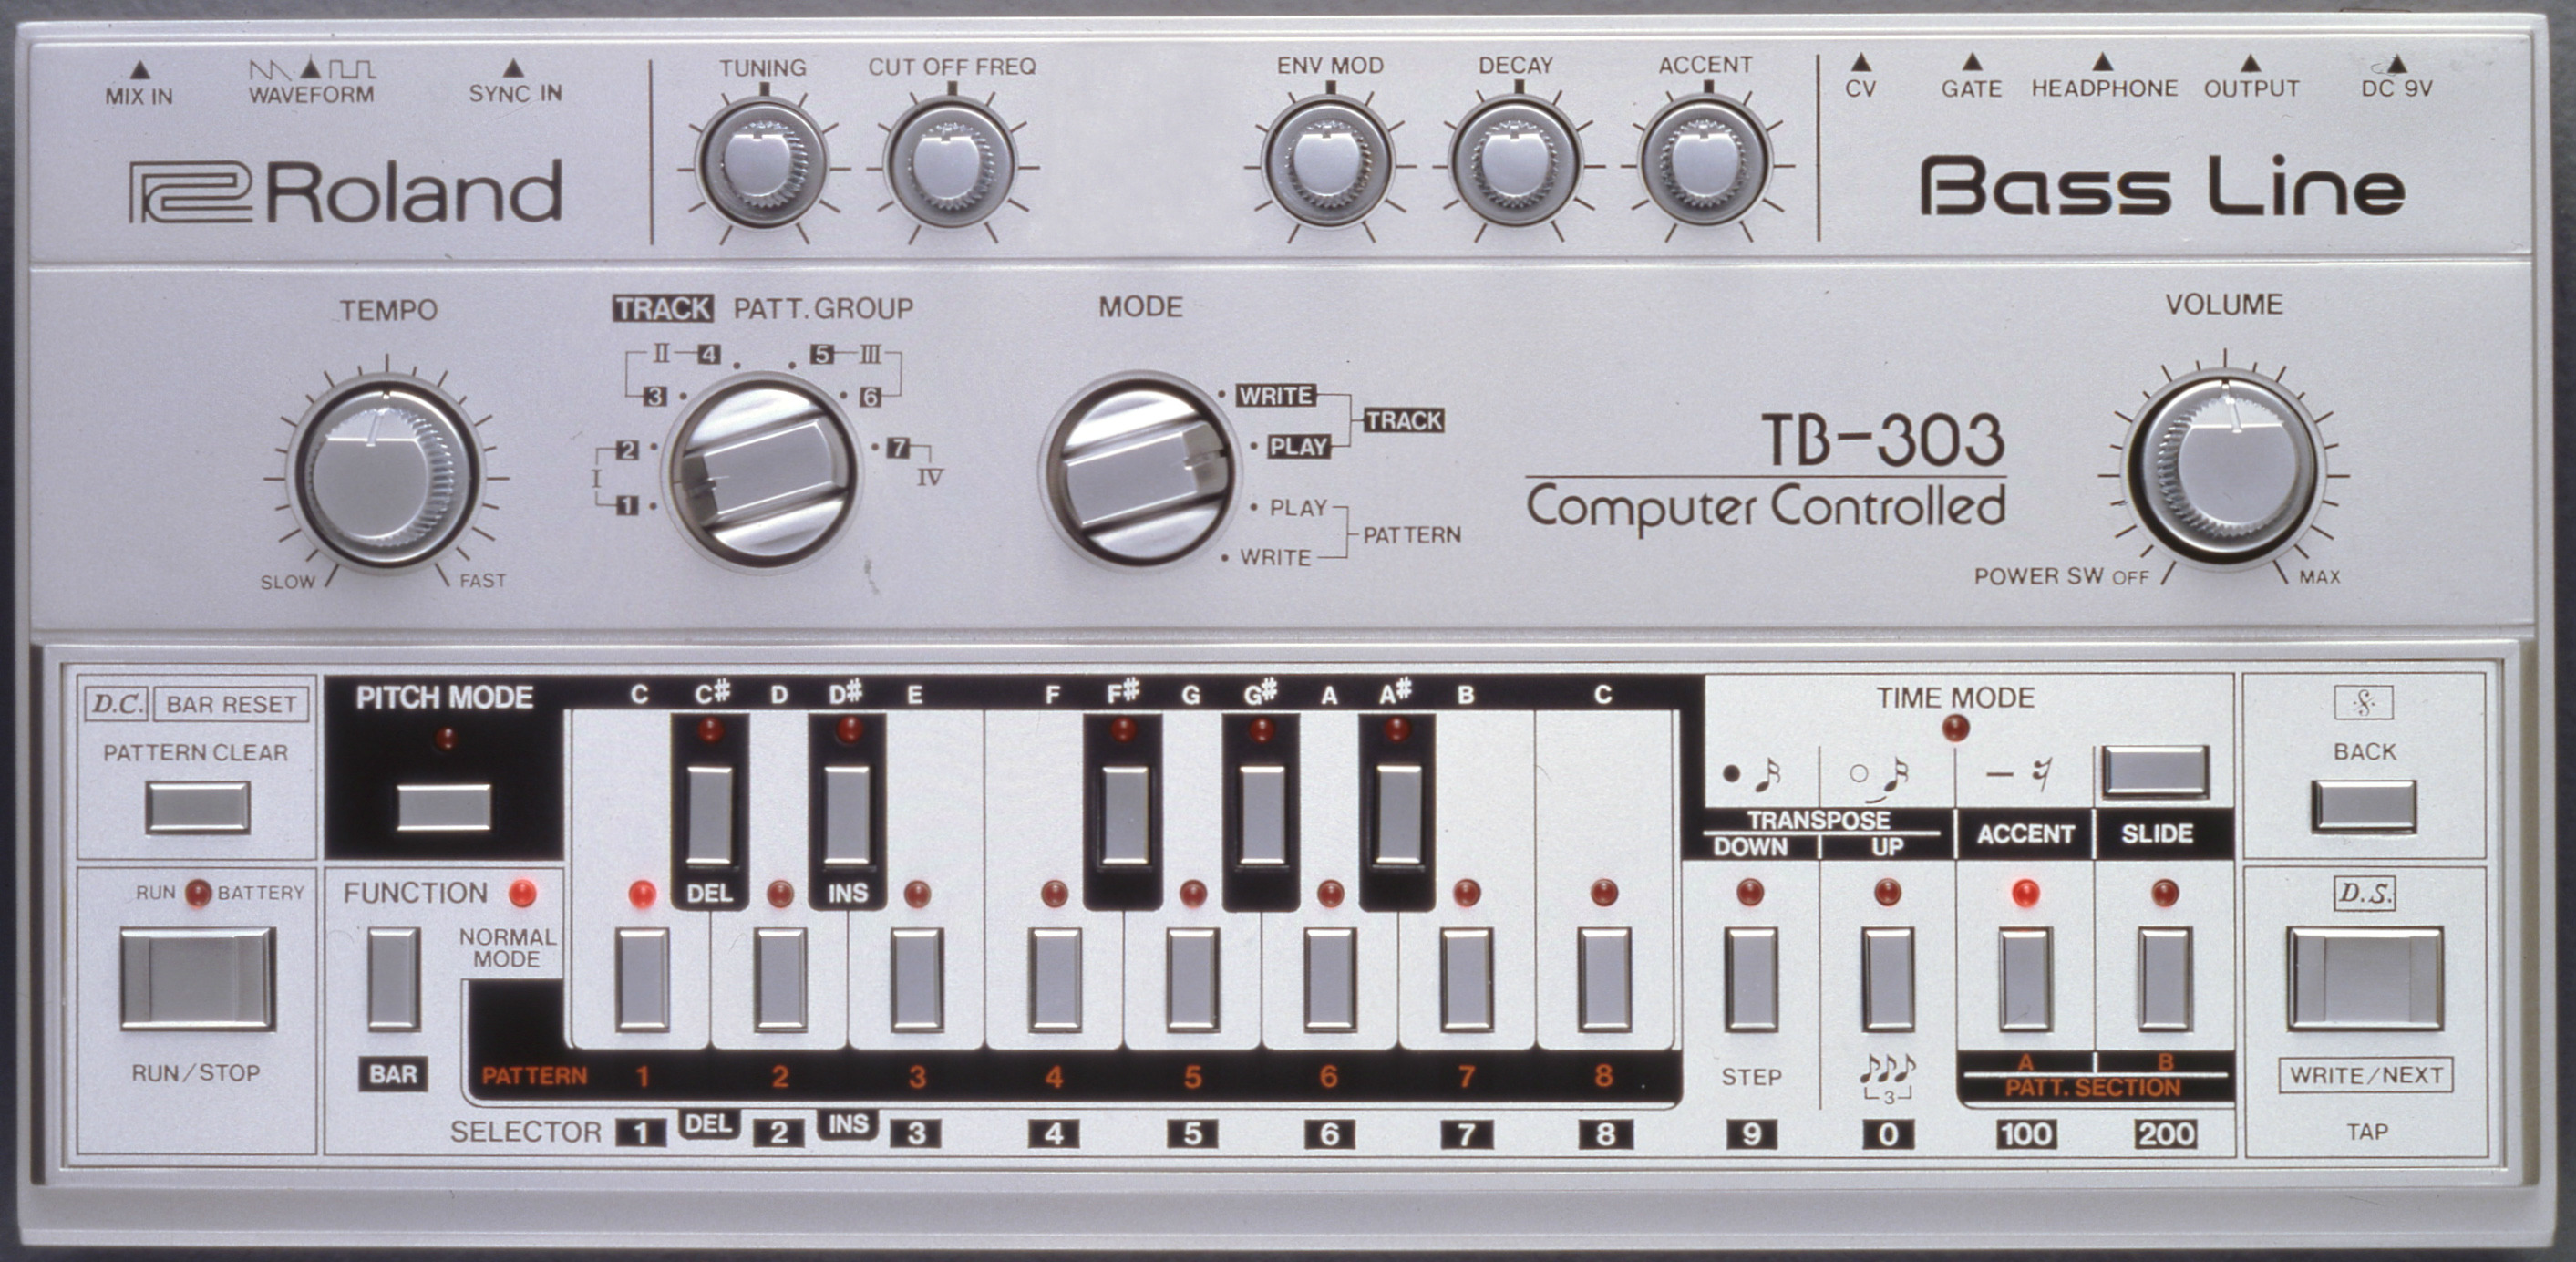 TB 303 RE-RELEASE 40 YEARS DELAYED BECAUSE LEAD ENGINEER KEEPS TWEAKING THE DESIGN